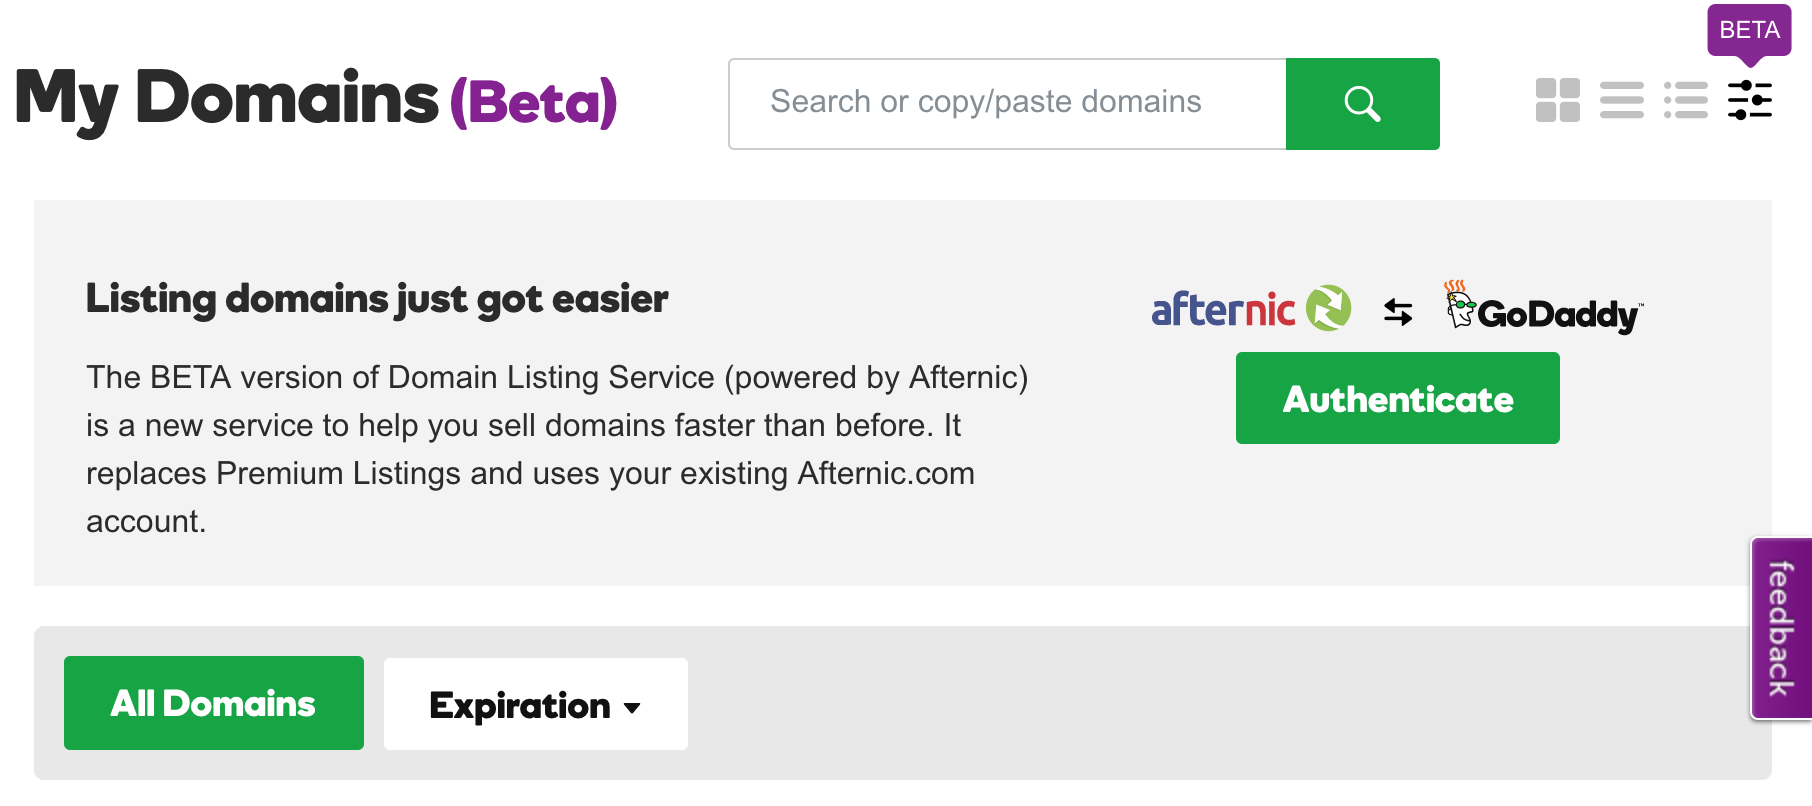 GoDaddy and Afternic Integrate With BETA Advanced List View